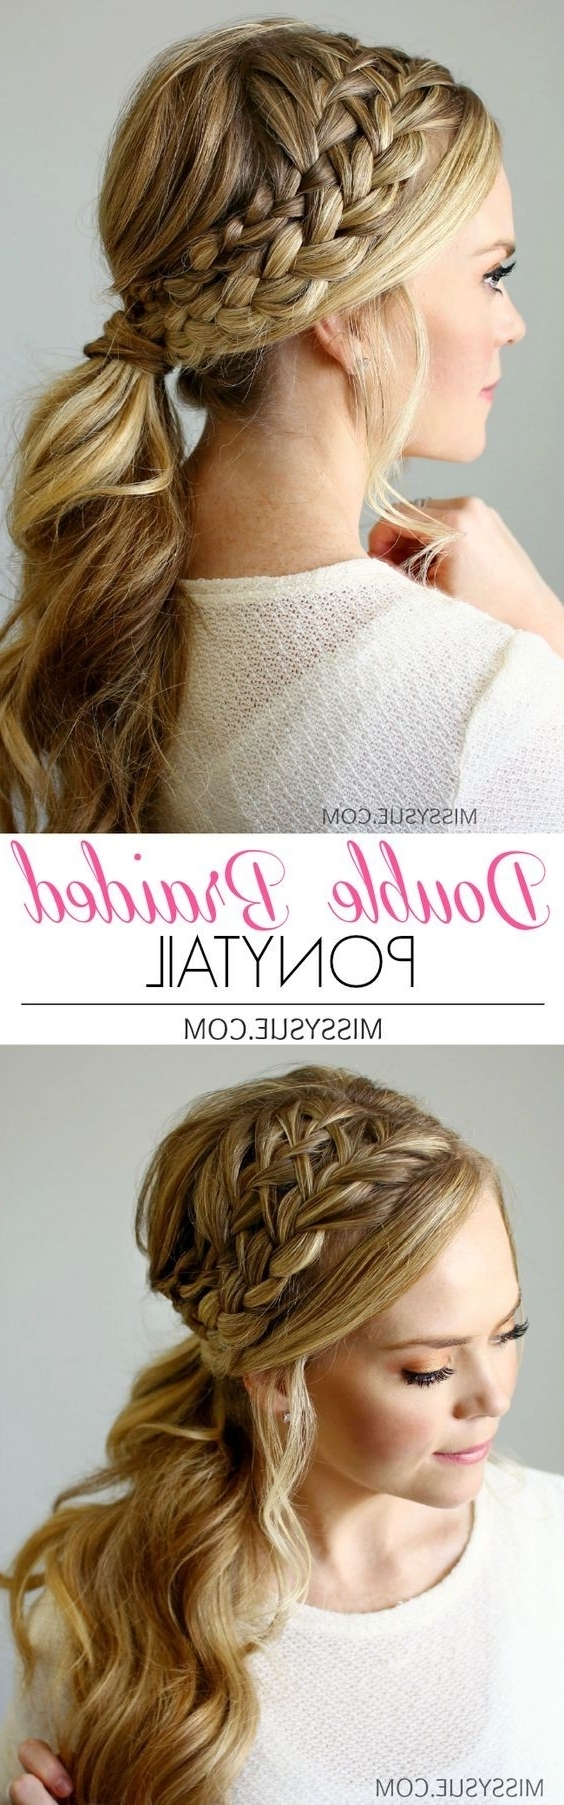 18 Cute Braided Ponytail Styles – Popular Haircuts Throughout Popular Sassy Side Ponytail Hairstyles (View 14 of 20)